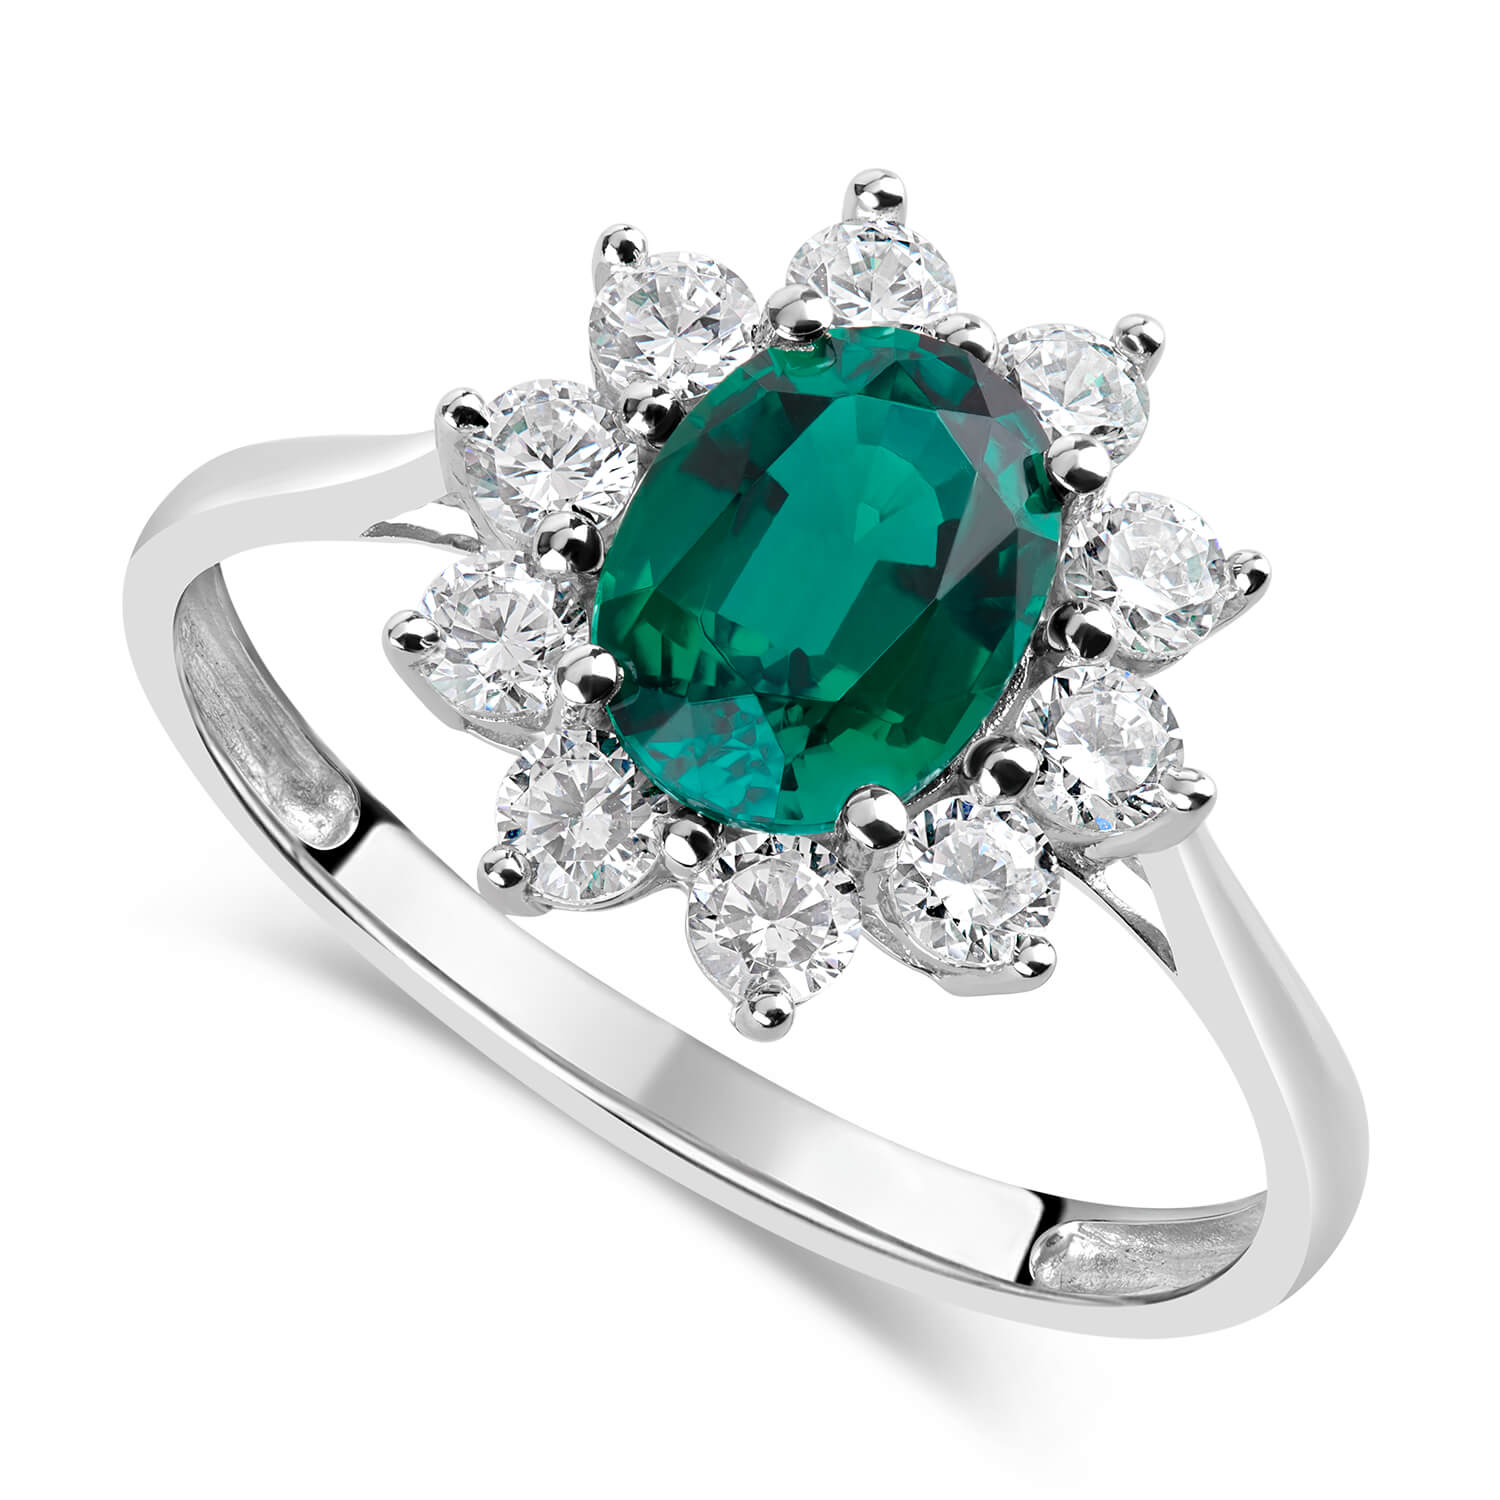 9ct White Gold and Emerald Ring